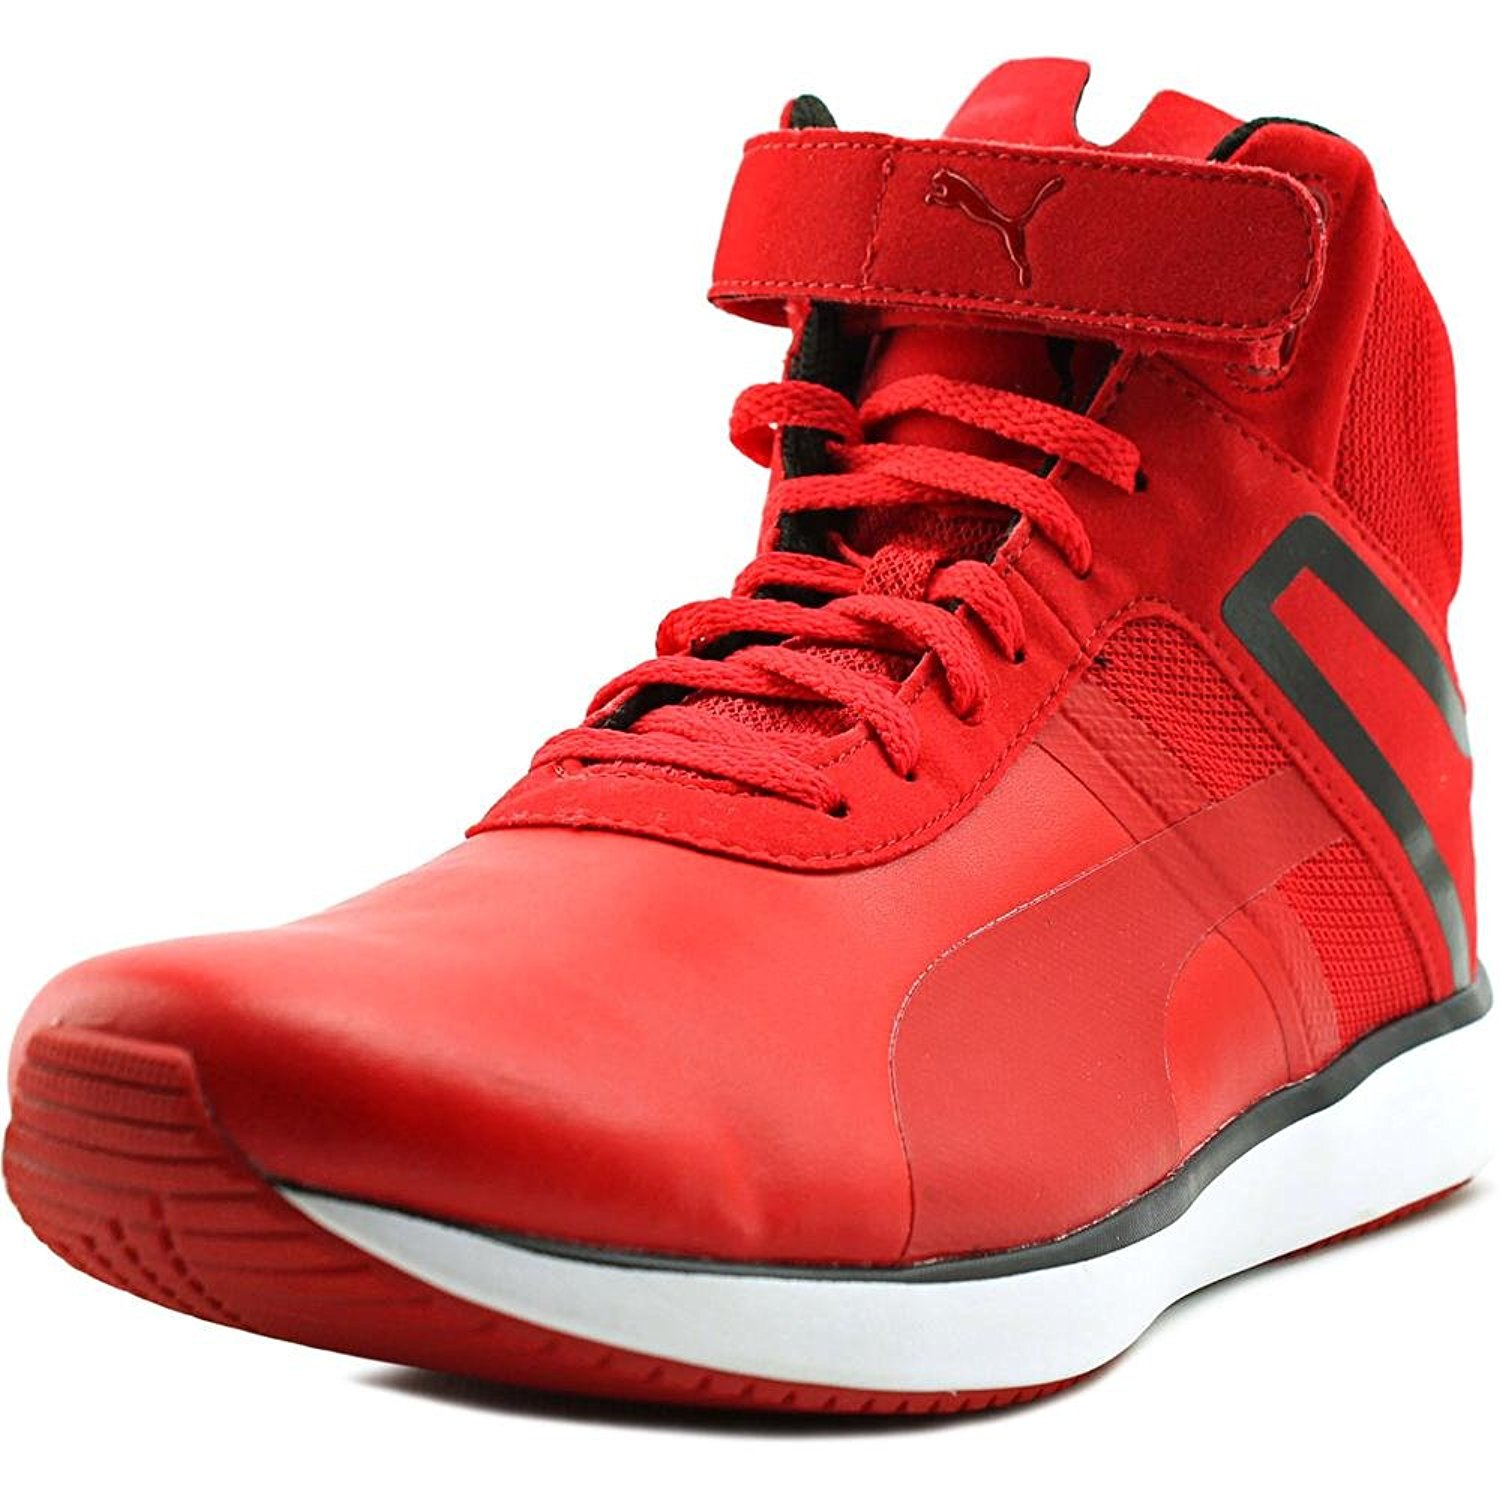 Buy Puma F116 Skin Mid Sf Men Round Toe Synthetic Red Basketball